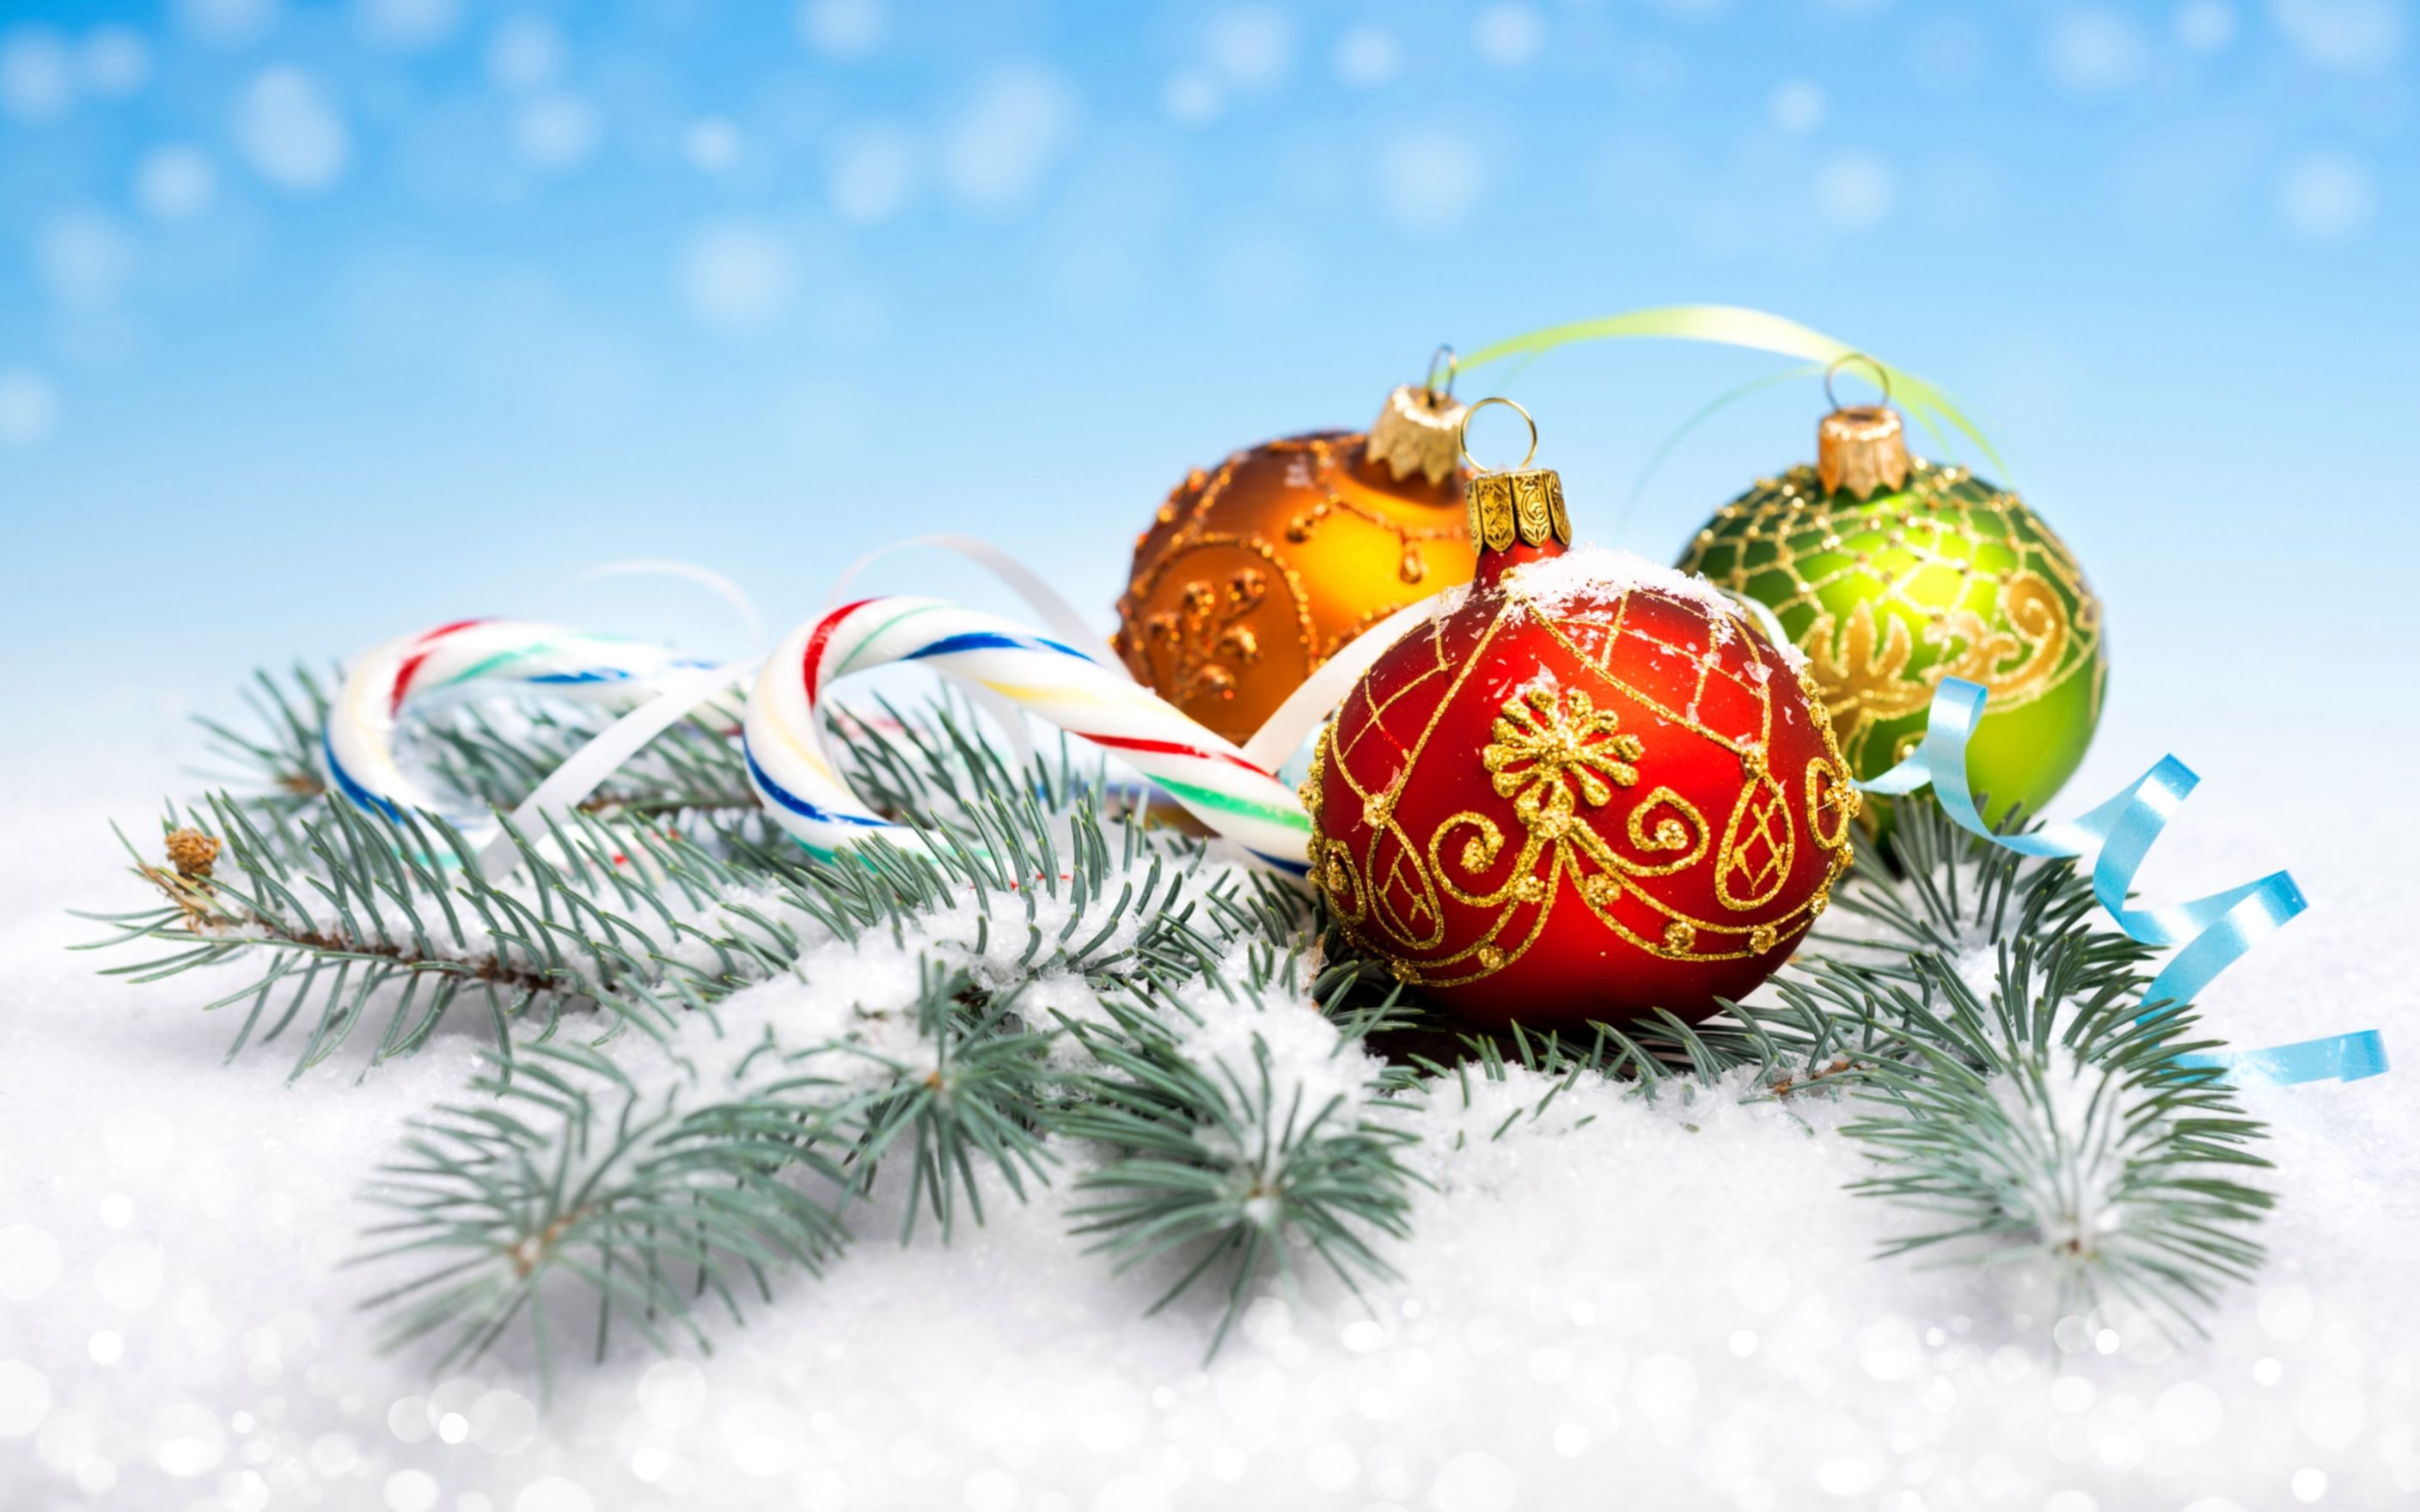 Download free HD Christmas Ornaments Wallpaper, image